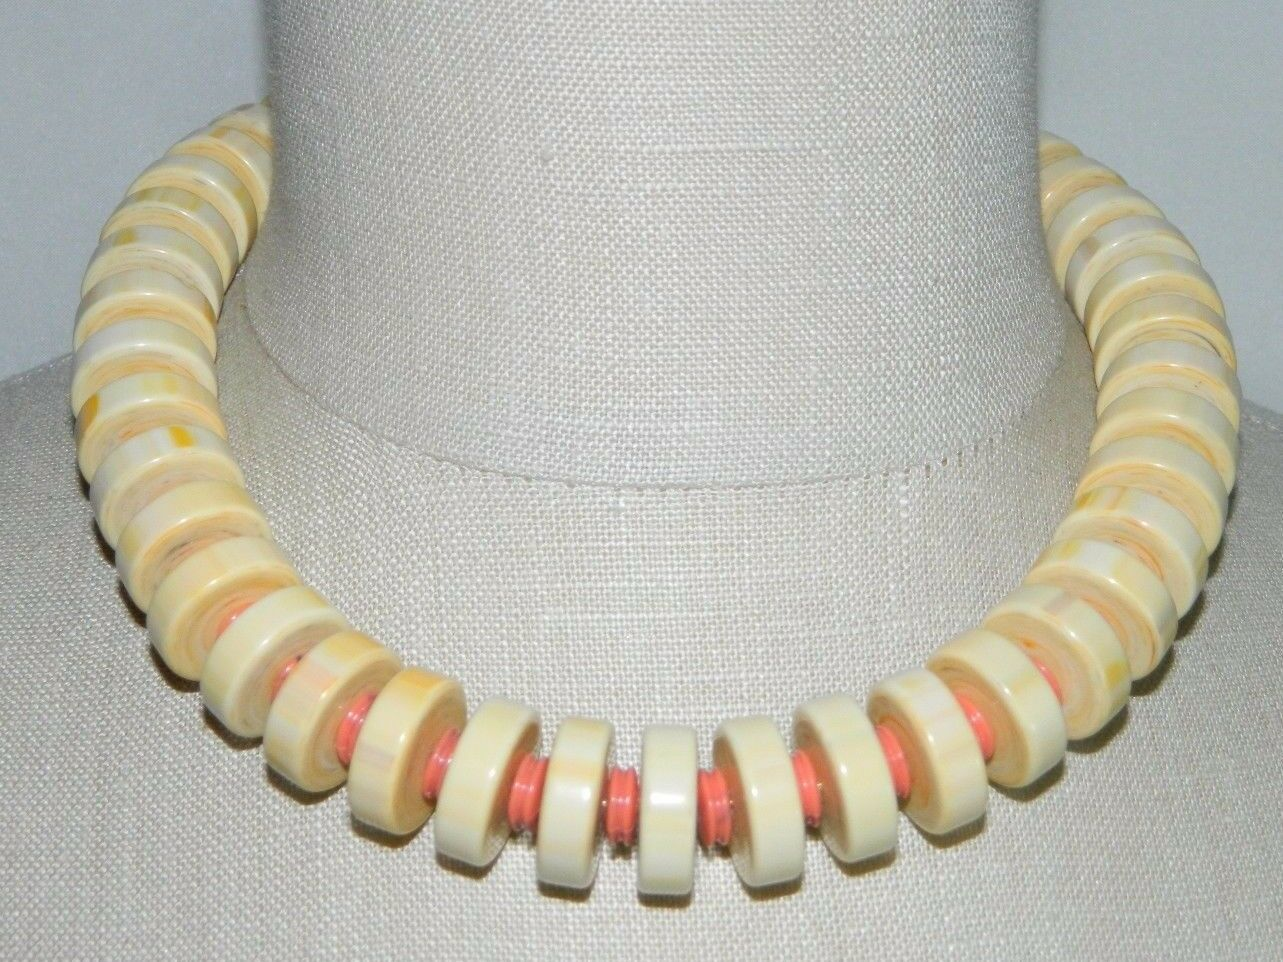 Primary image for VTG NOS MONET PUEBLO Gold Tone Cream Orange Bead Choker Necklace with Tags